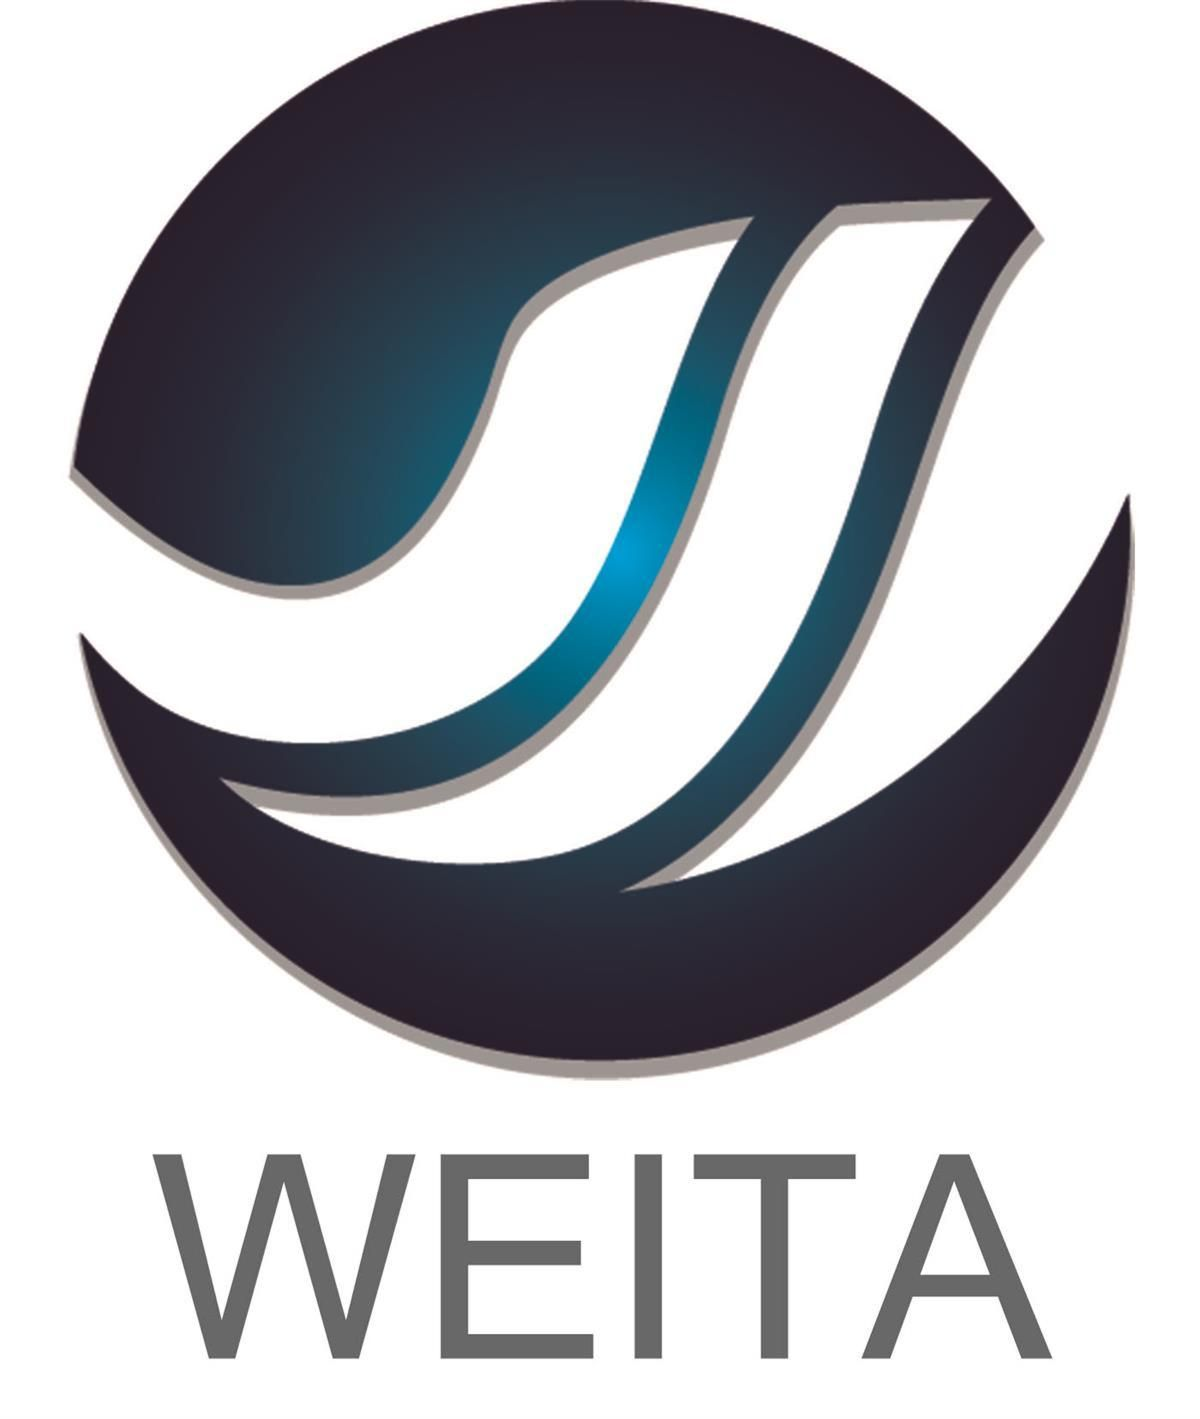 Shanghai Weita International Trading Co., Ltd